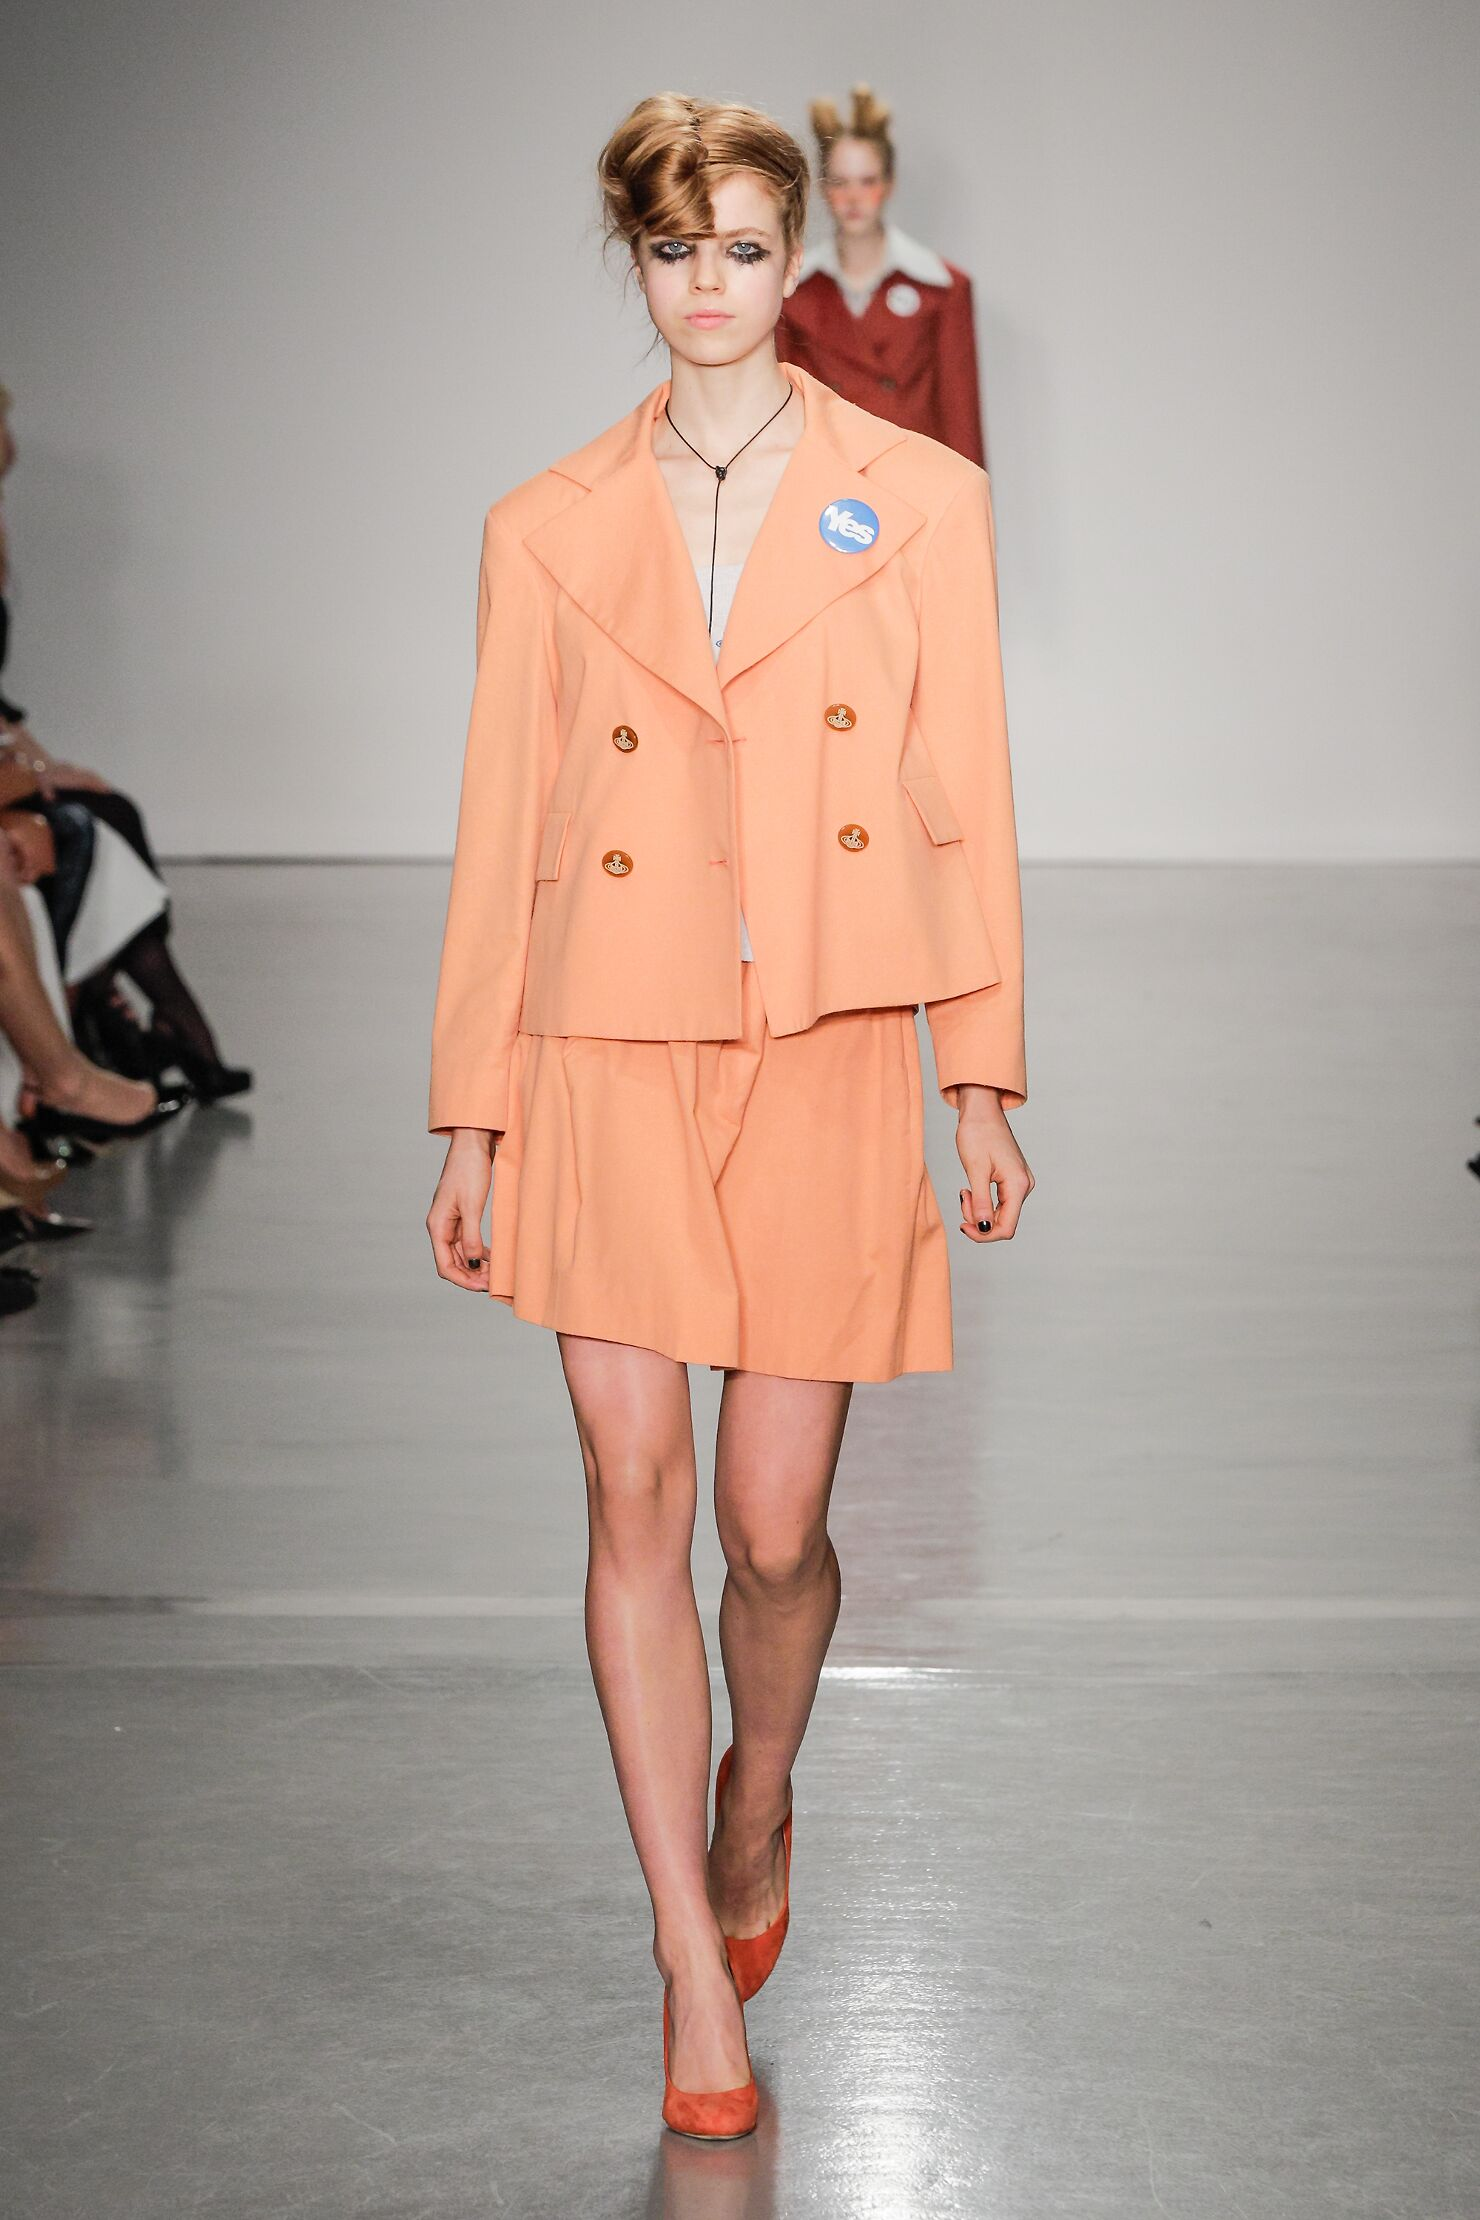 Vivienne Westwood Red Label Spring Summer 2015 Womens Collection London Fashion Week